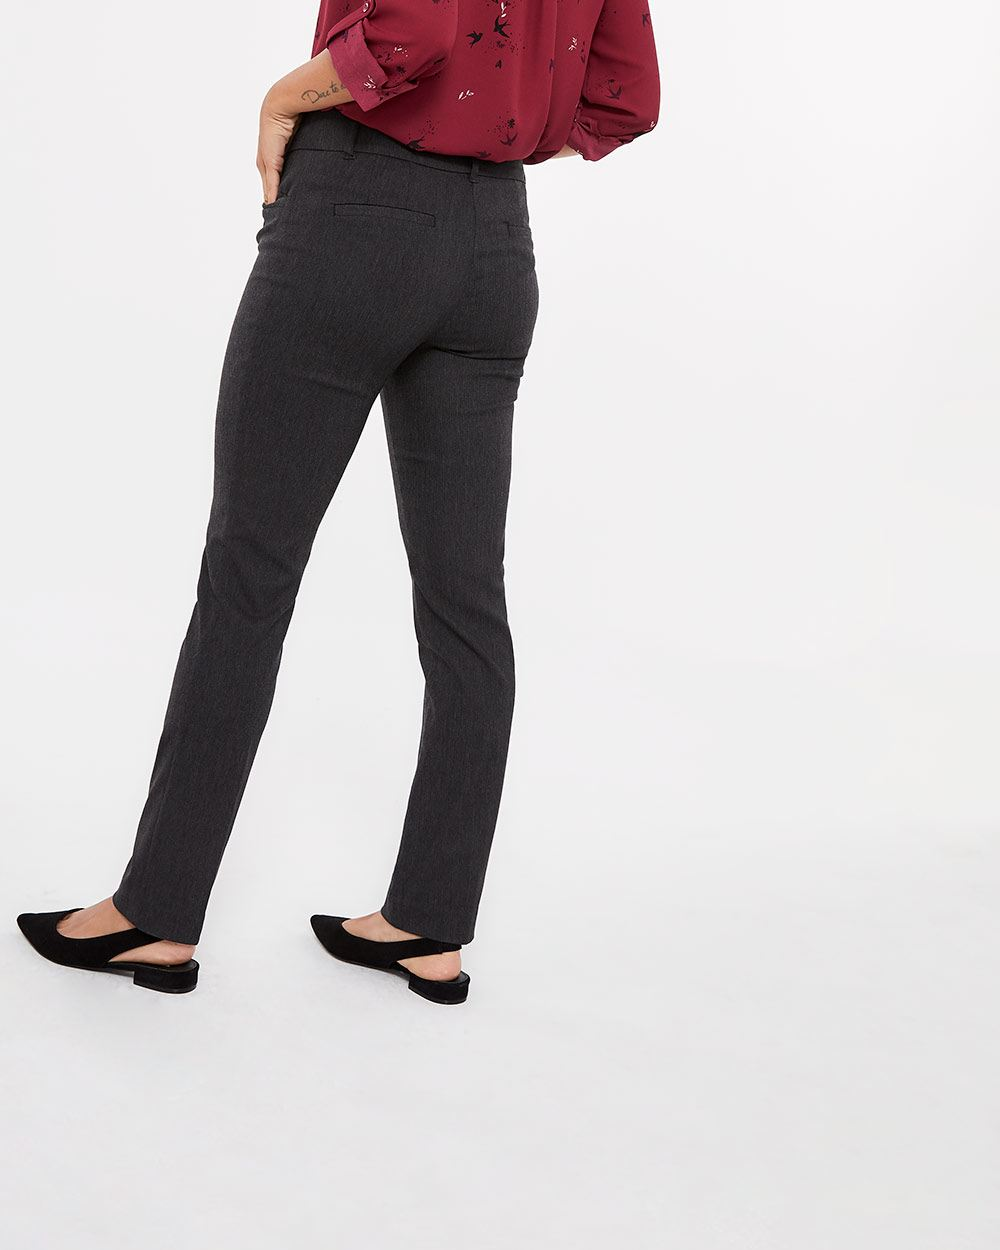 The Petite Iconic Straight Leg Grey Melange Pants